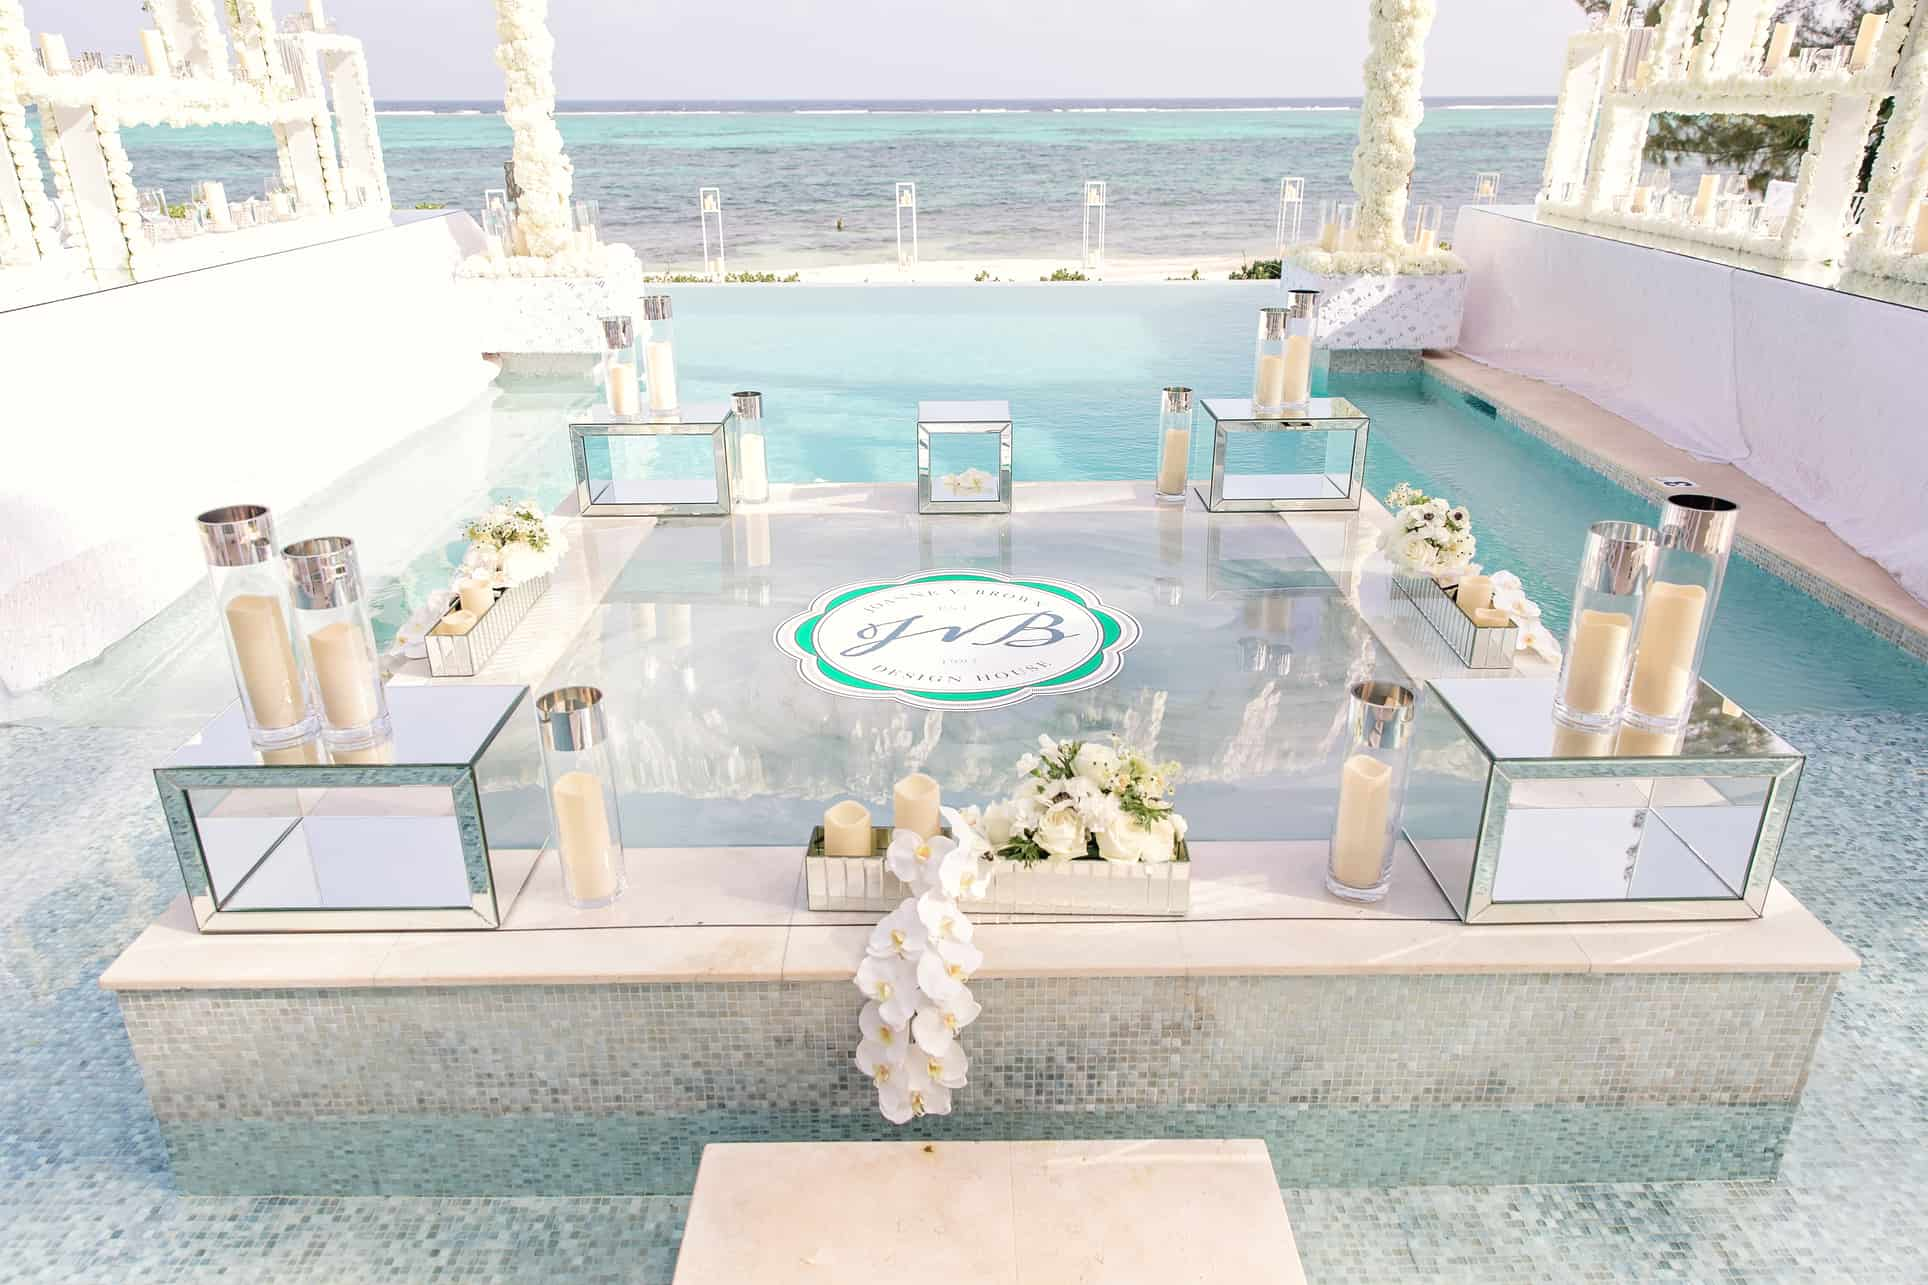 JVB Design House Celebrations Ltd weddings and events in the cayman islands